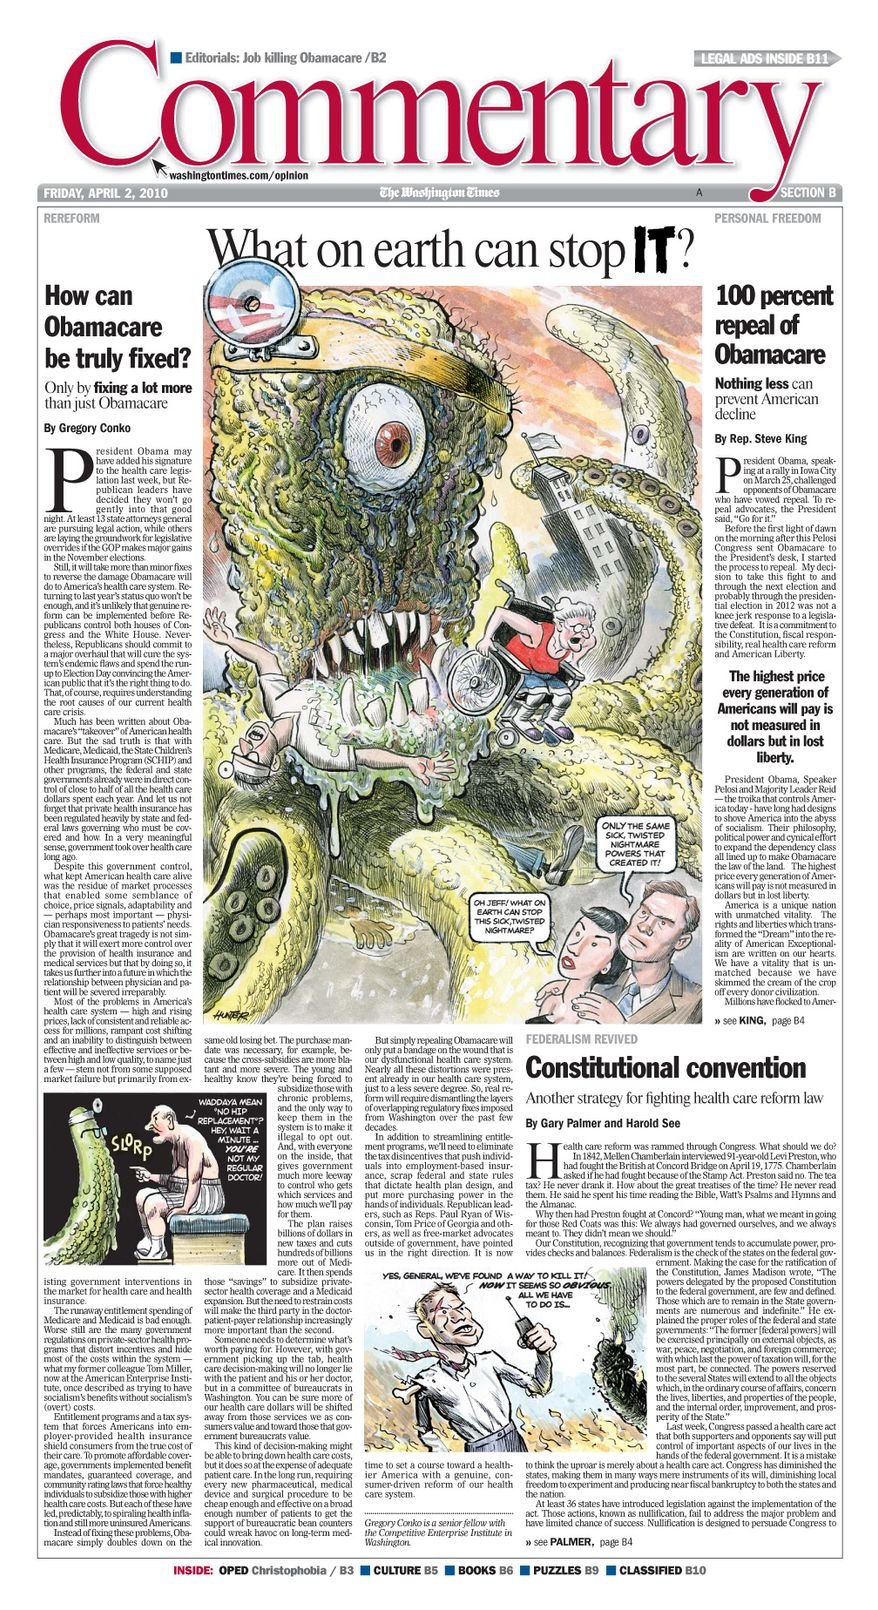 A Washington Times' Commentary front page from April 2, 2010, featuring a cartoon from Alex Hunter.